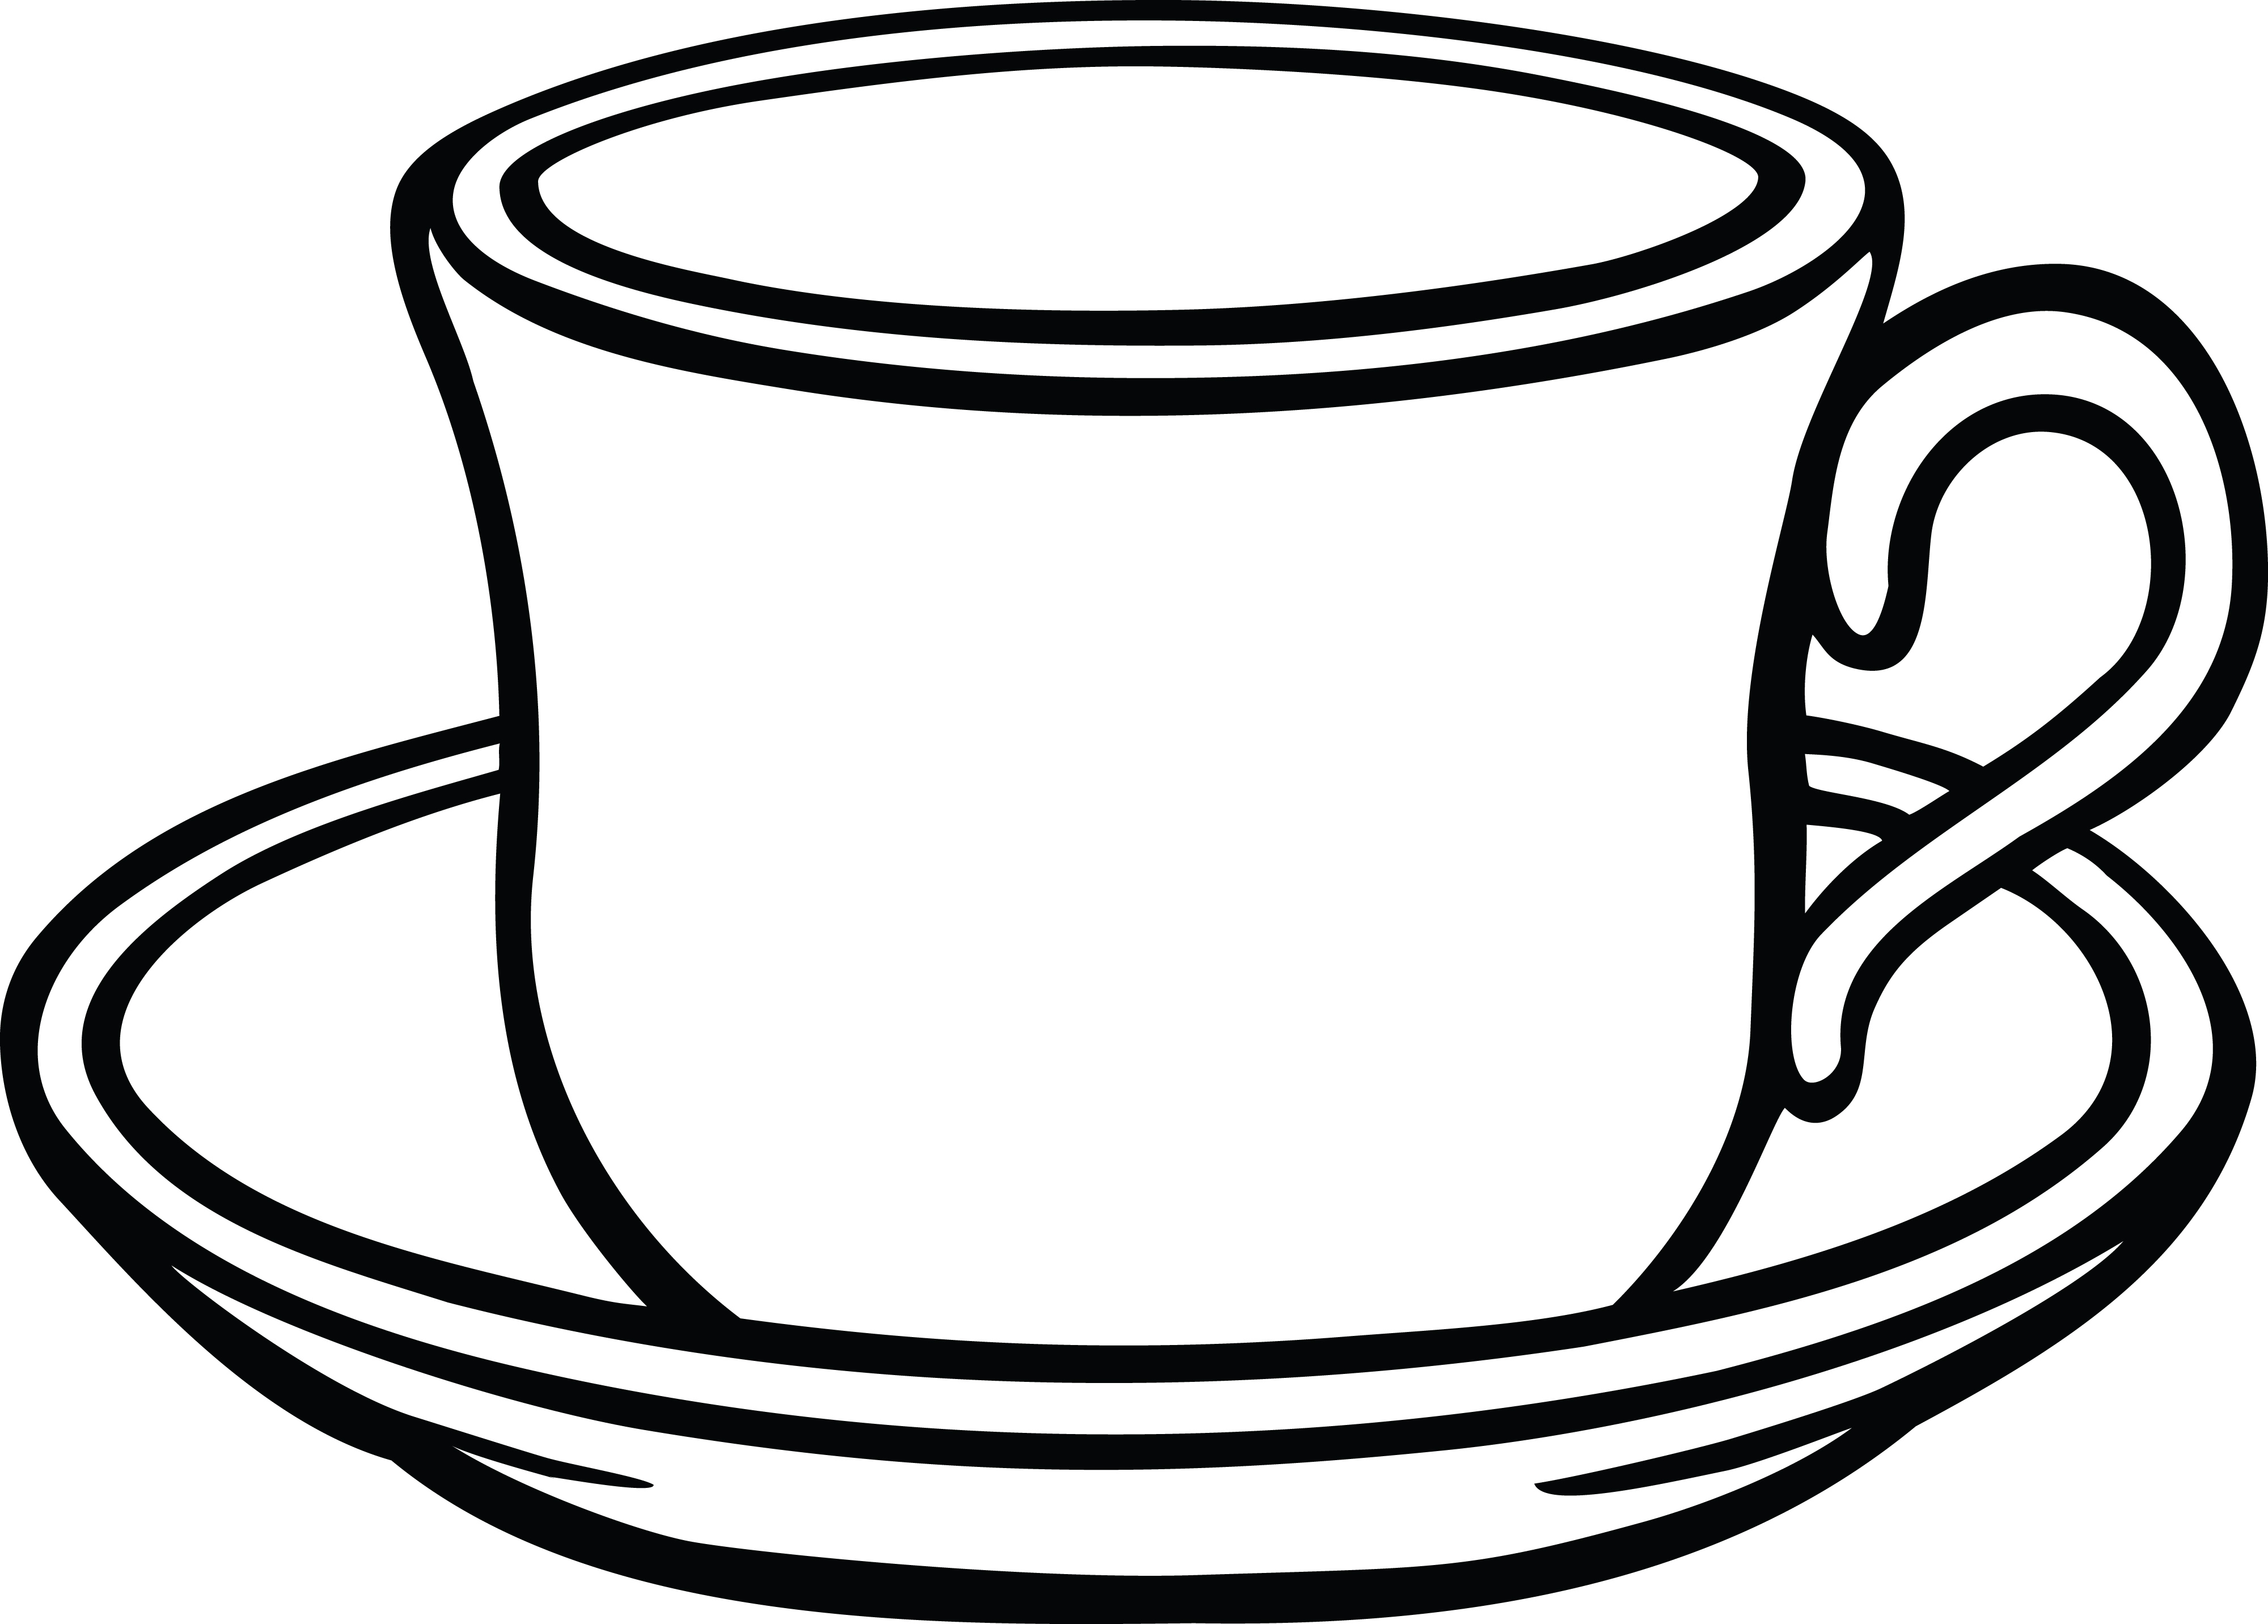 free clipart of a cup of coffee and saucer rh free clipartof com cup clipart free cup clipart images